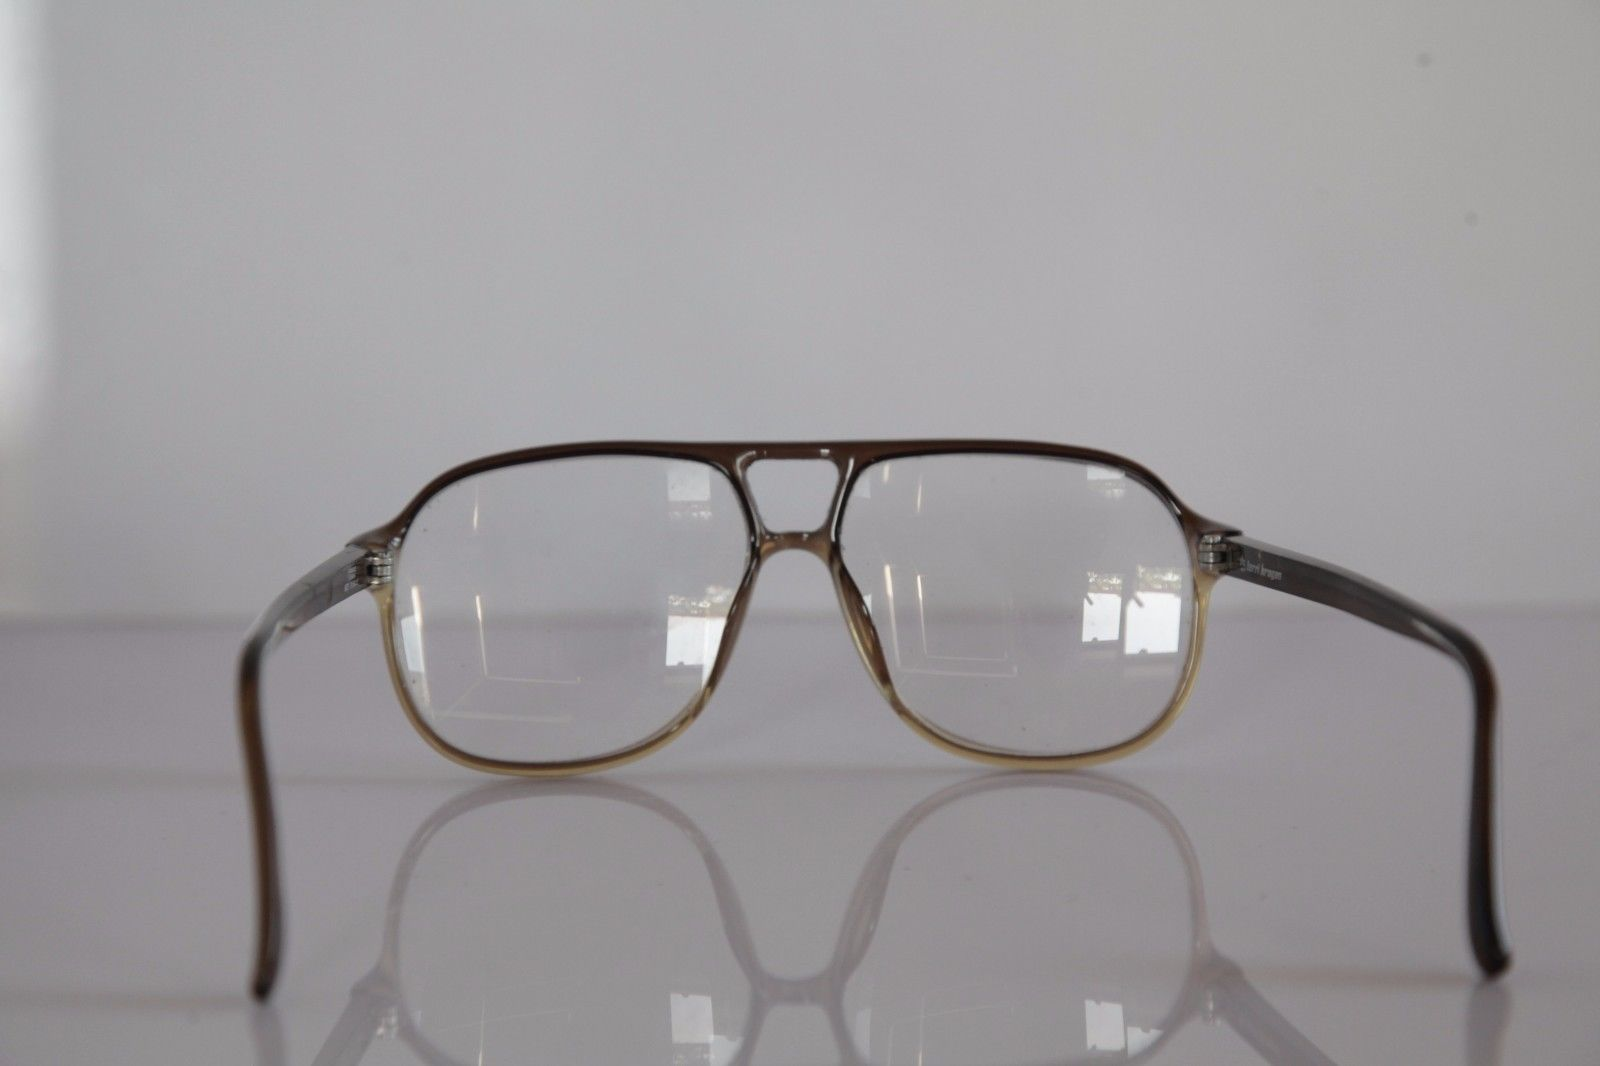 TERRI BROGAN Eyewear, Crystal Brown Frame,  RX-Able Prescription Lenses. Germany